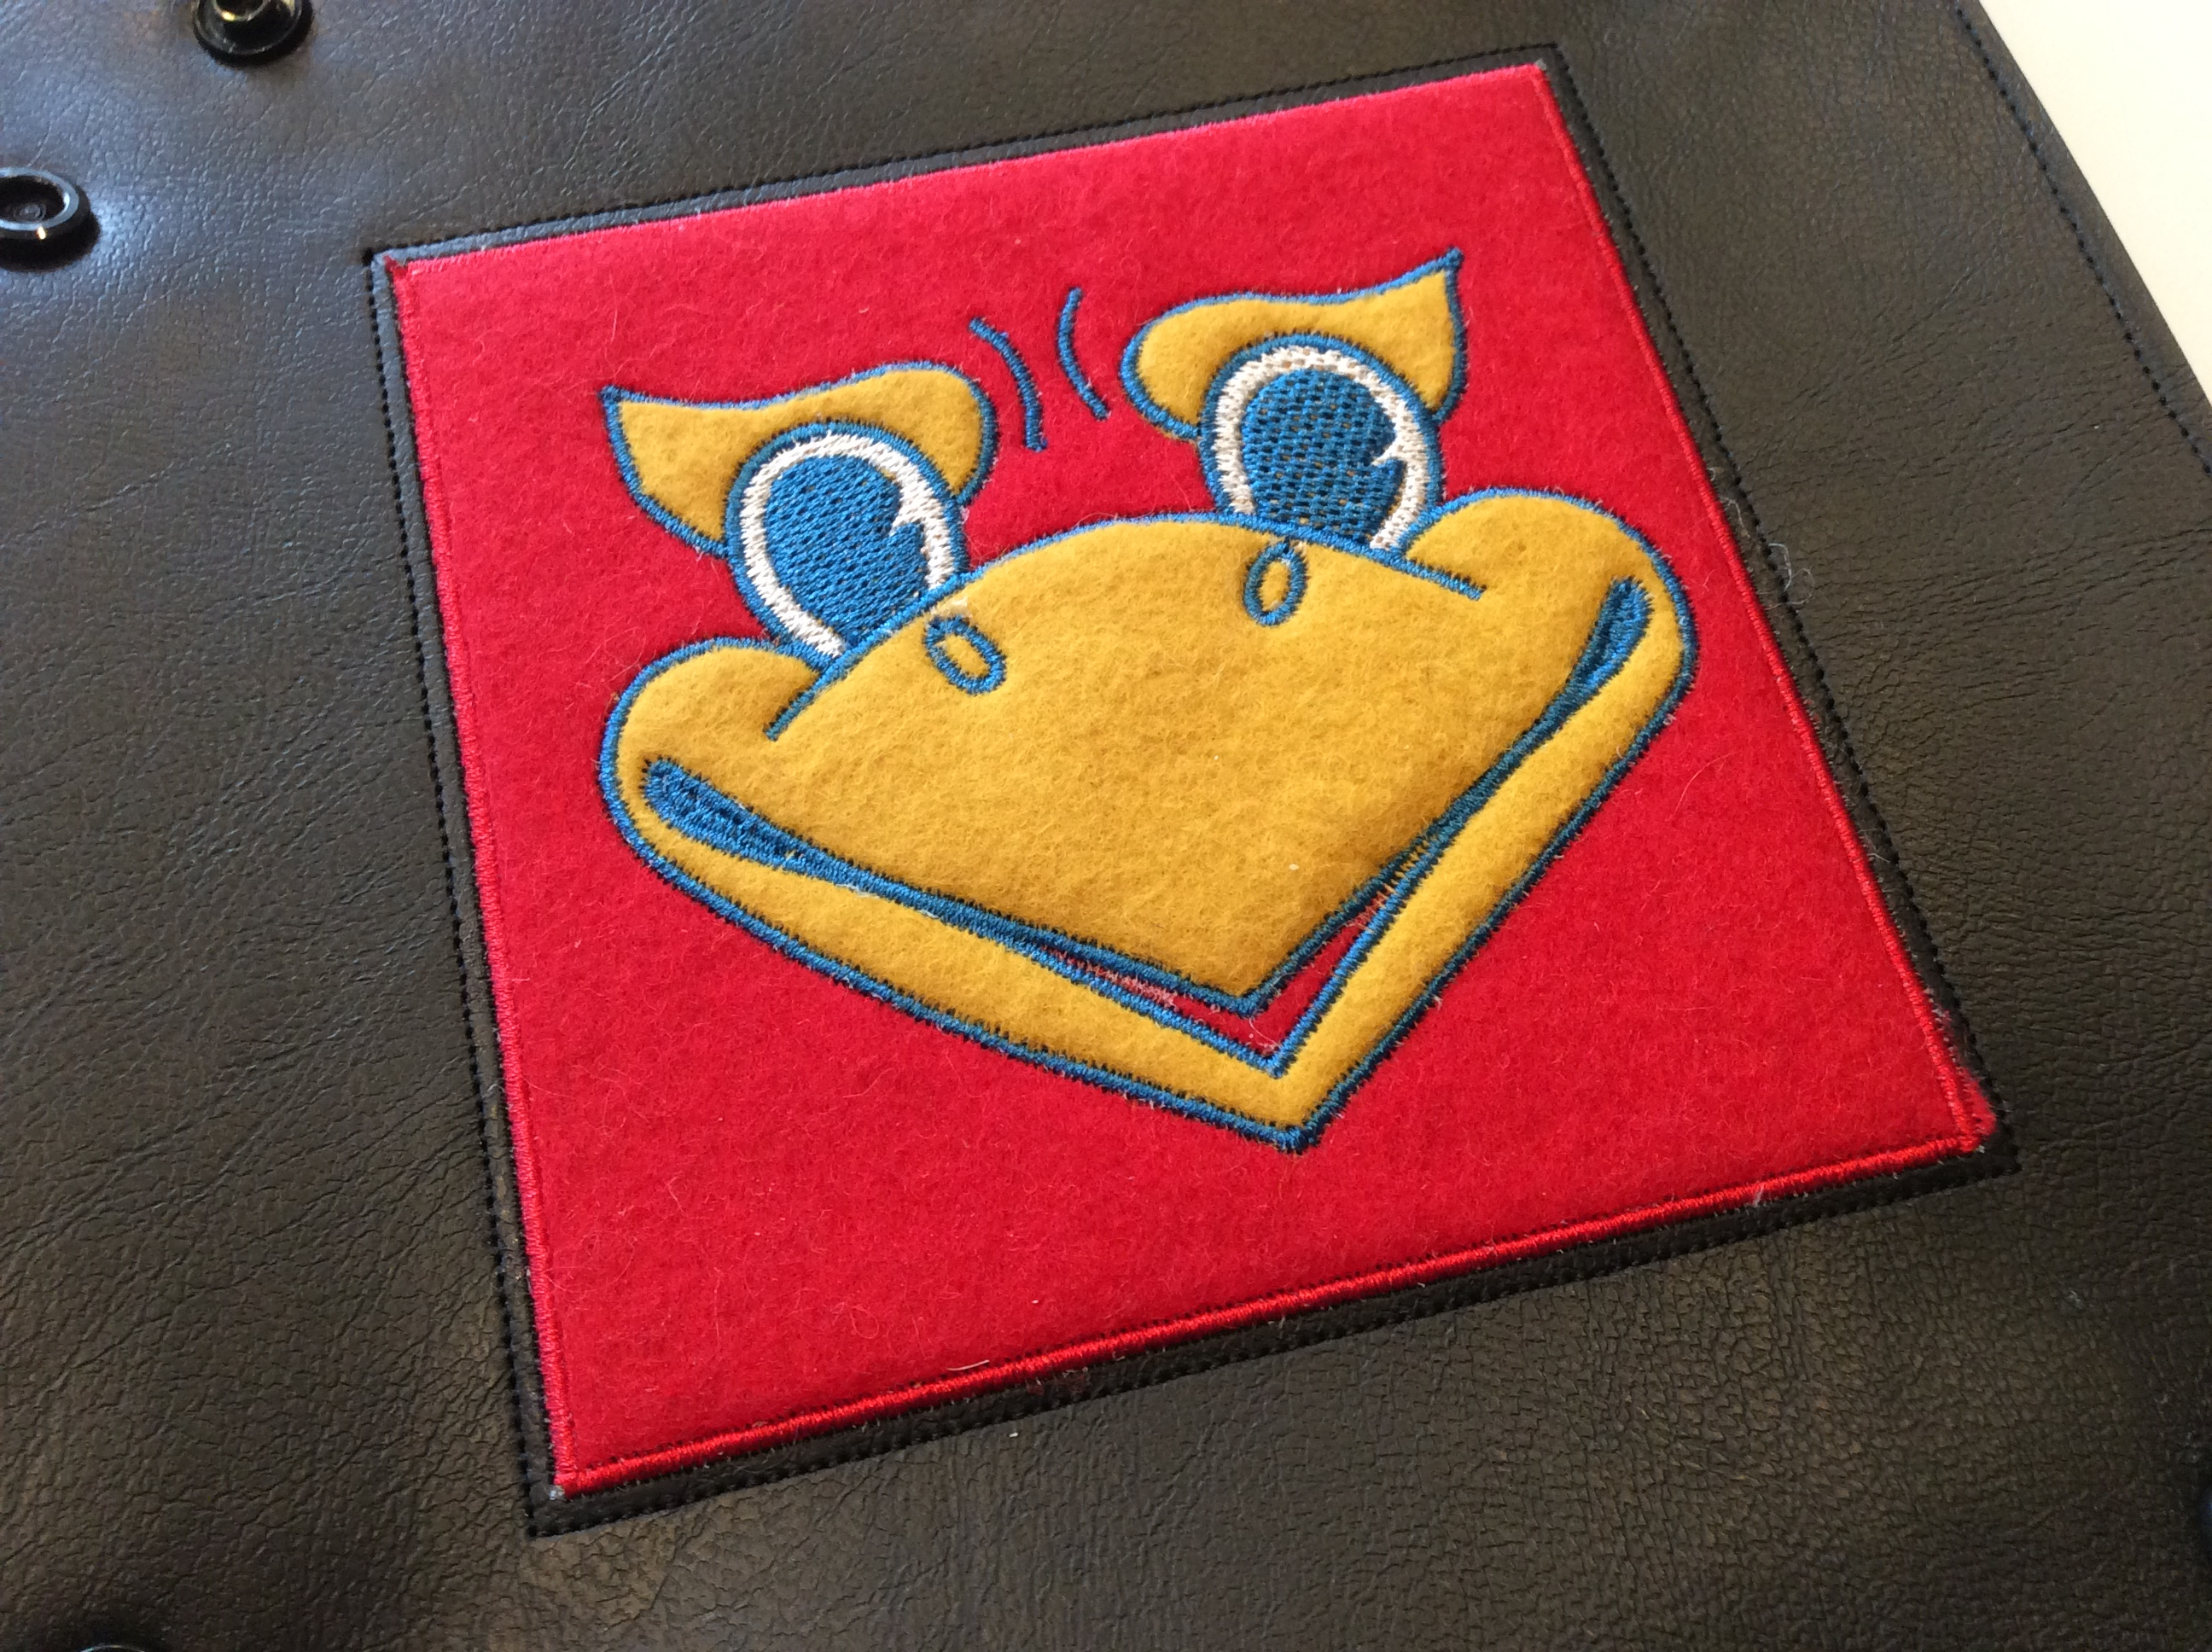 Embroidered Kansas Jayhawk mascot logo